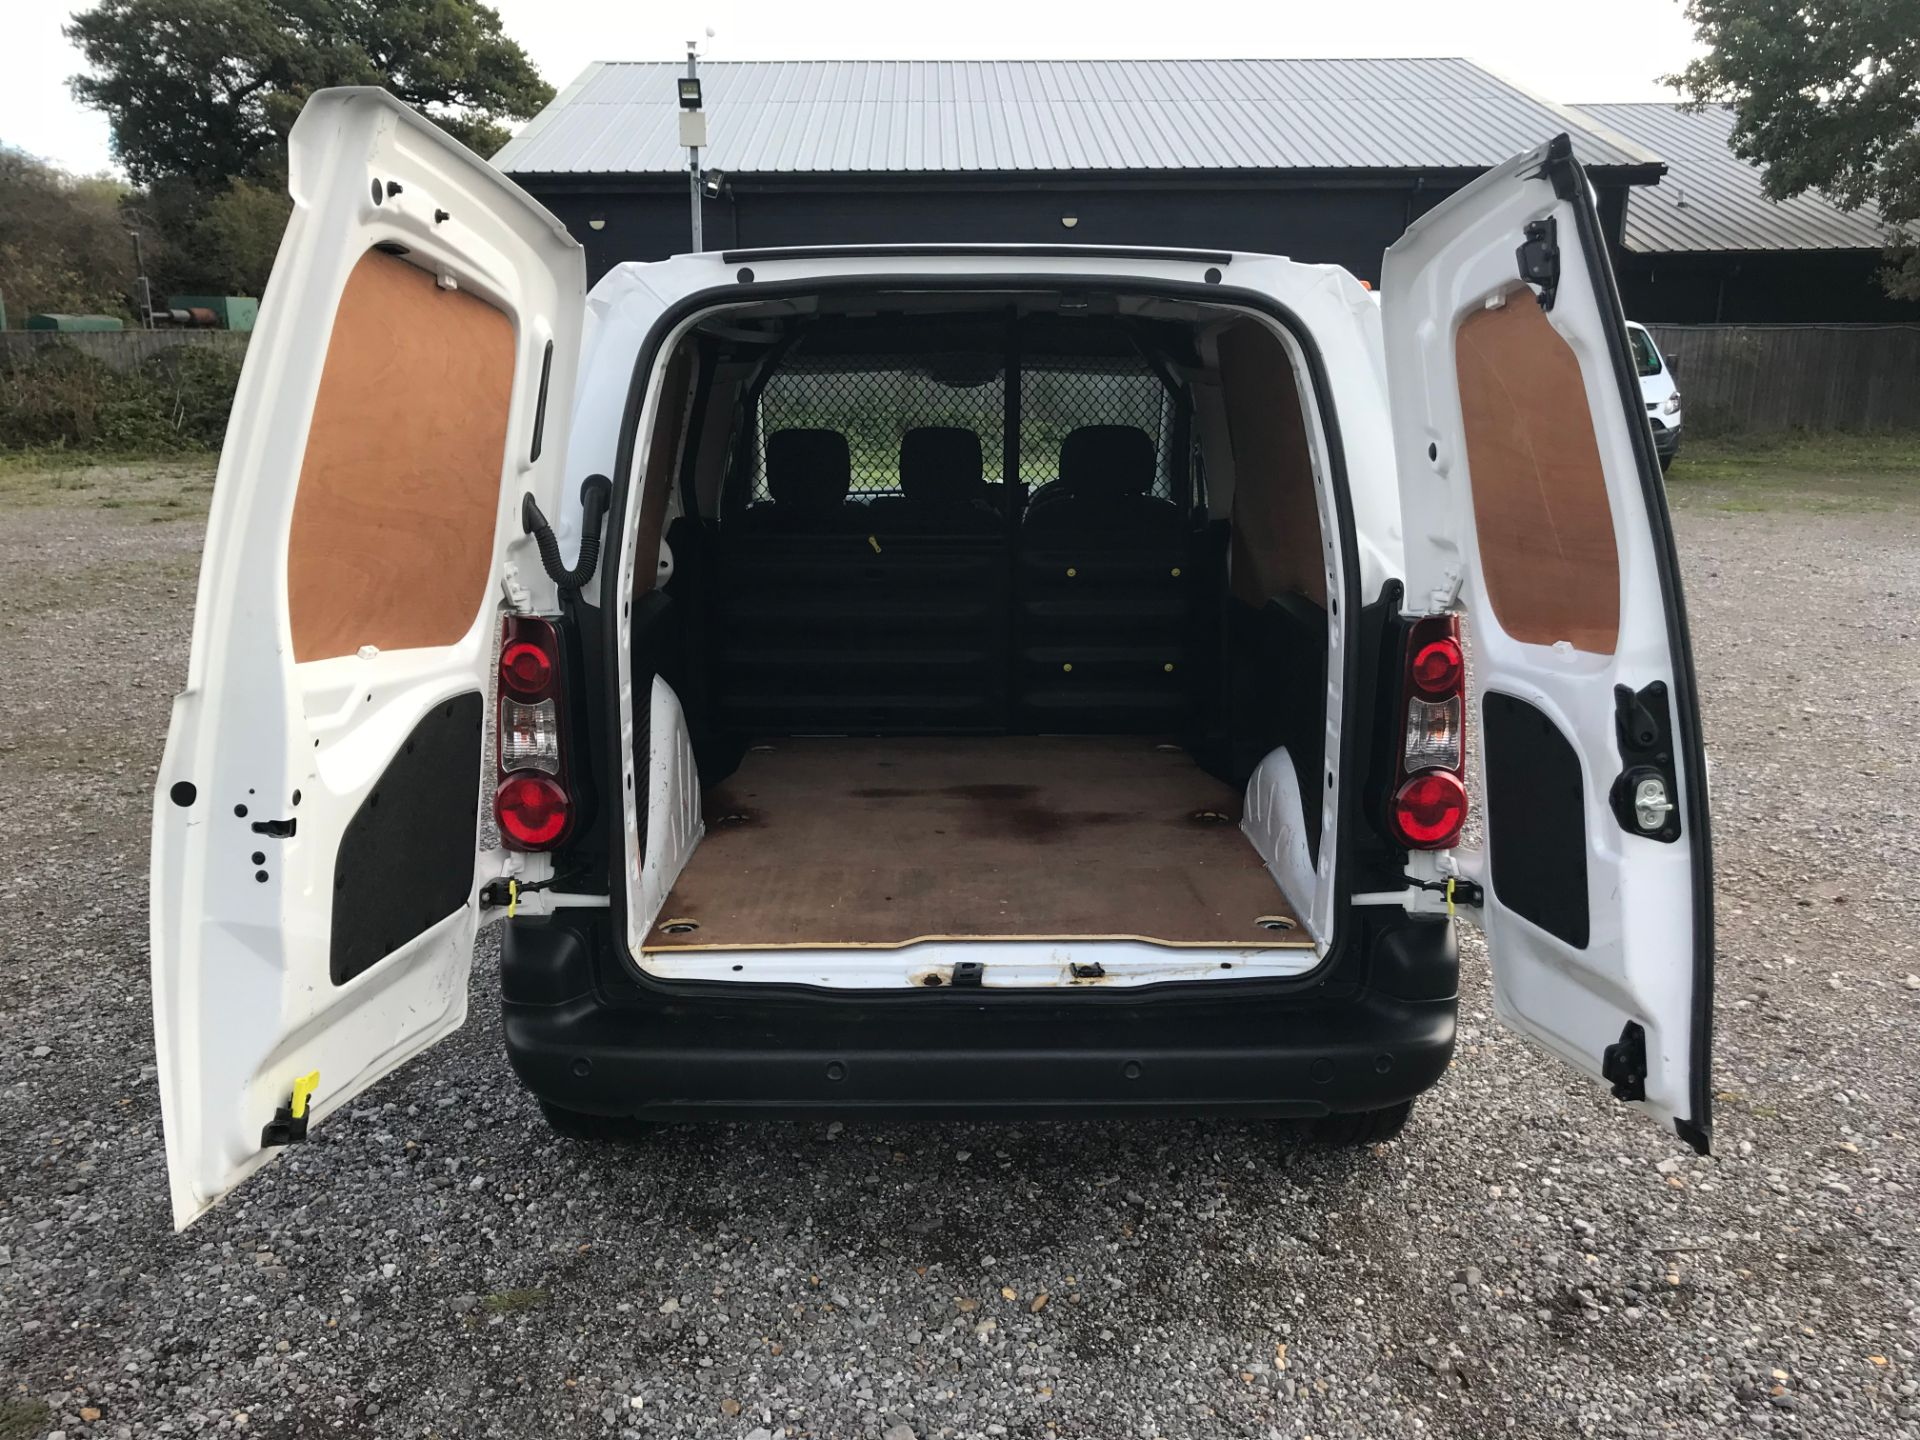 2018 Peugeot Partner 850 1.6 Bluehdi 100 Professional Van [Non Ss]*Restricted to 69MPH* (NV18PXR) Image 11